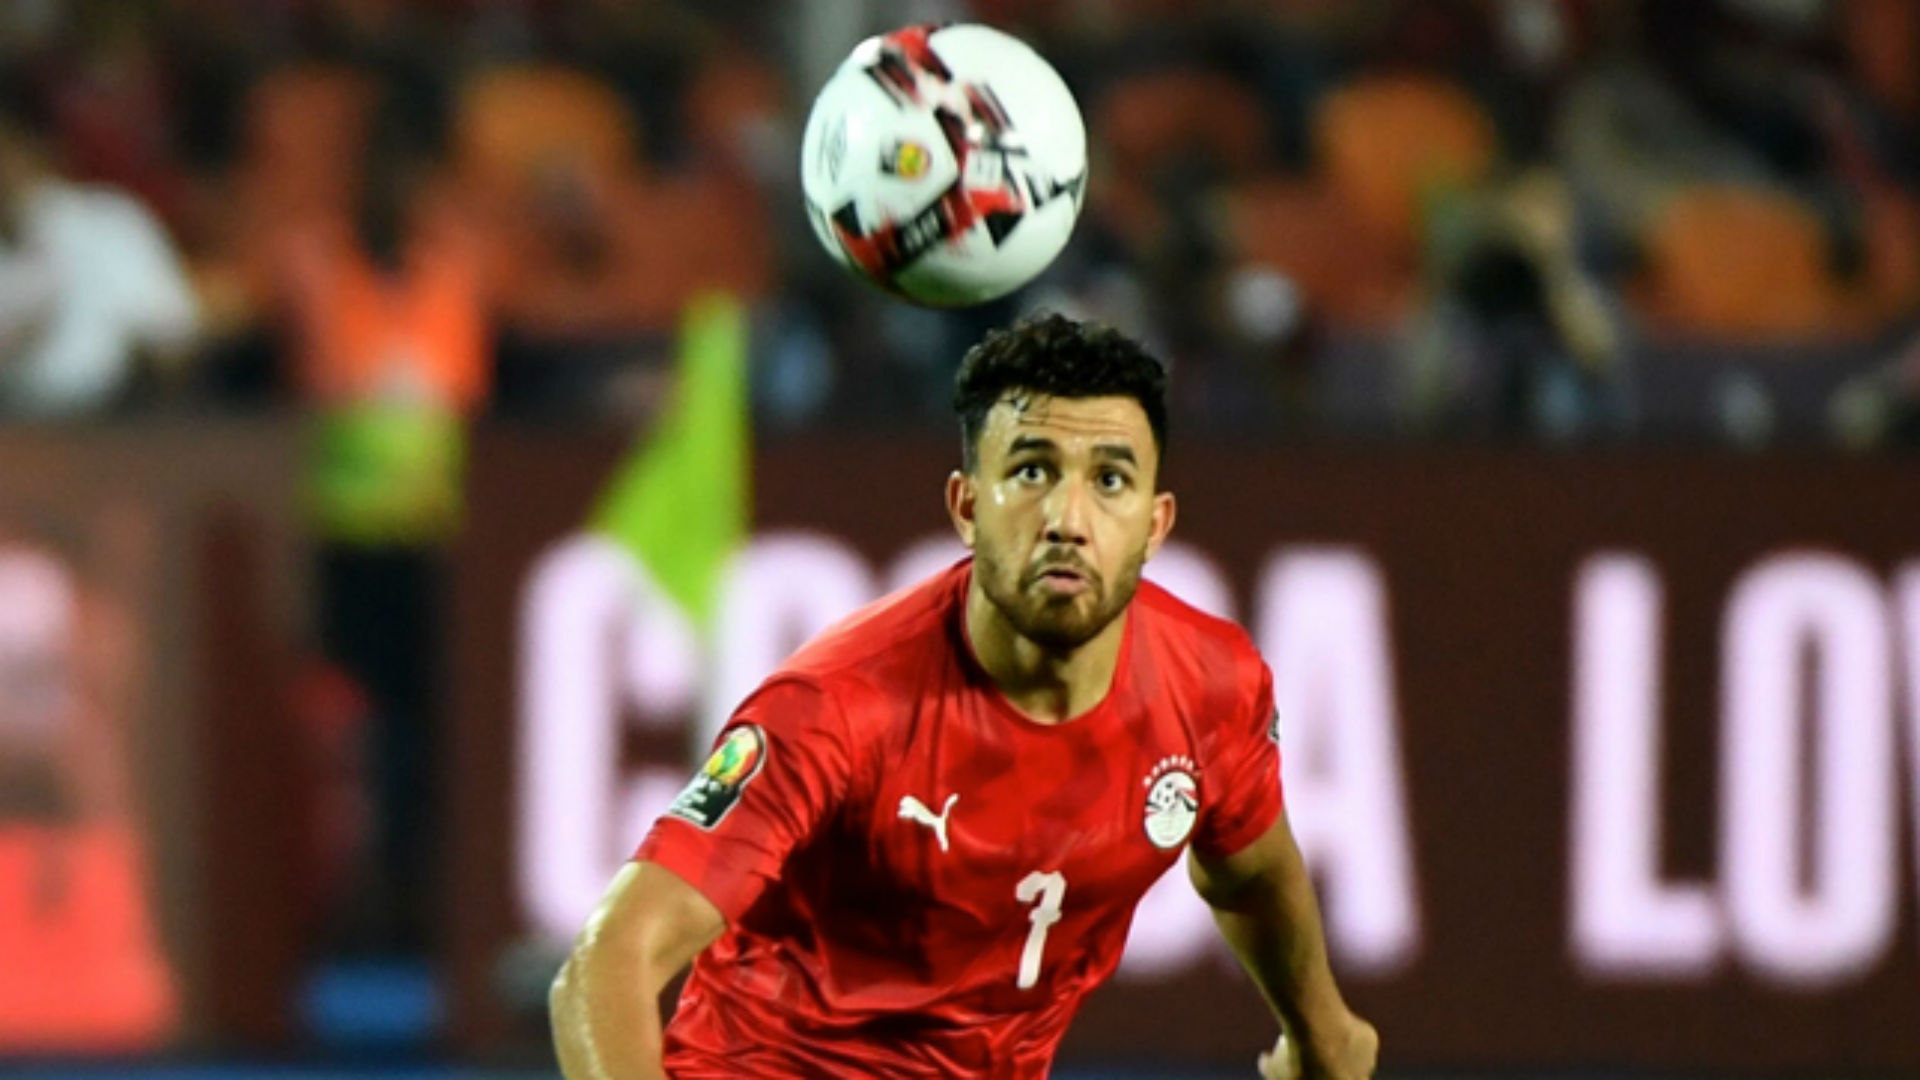 Salah sets up Egypt win over Uganda who reach last 16